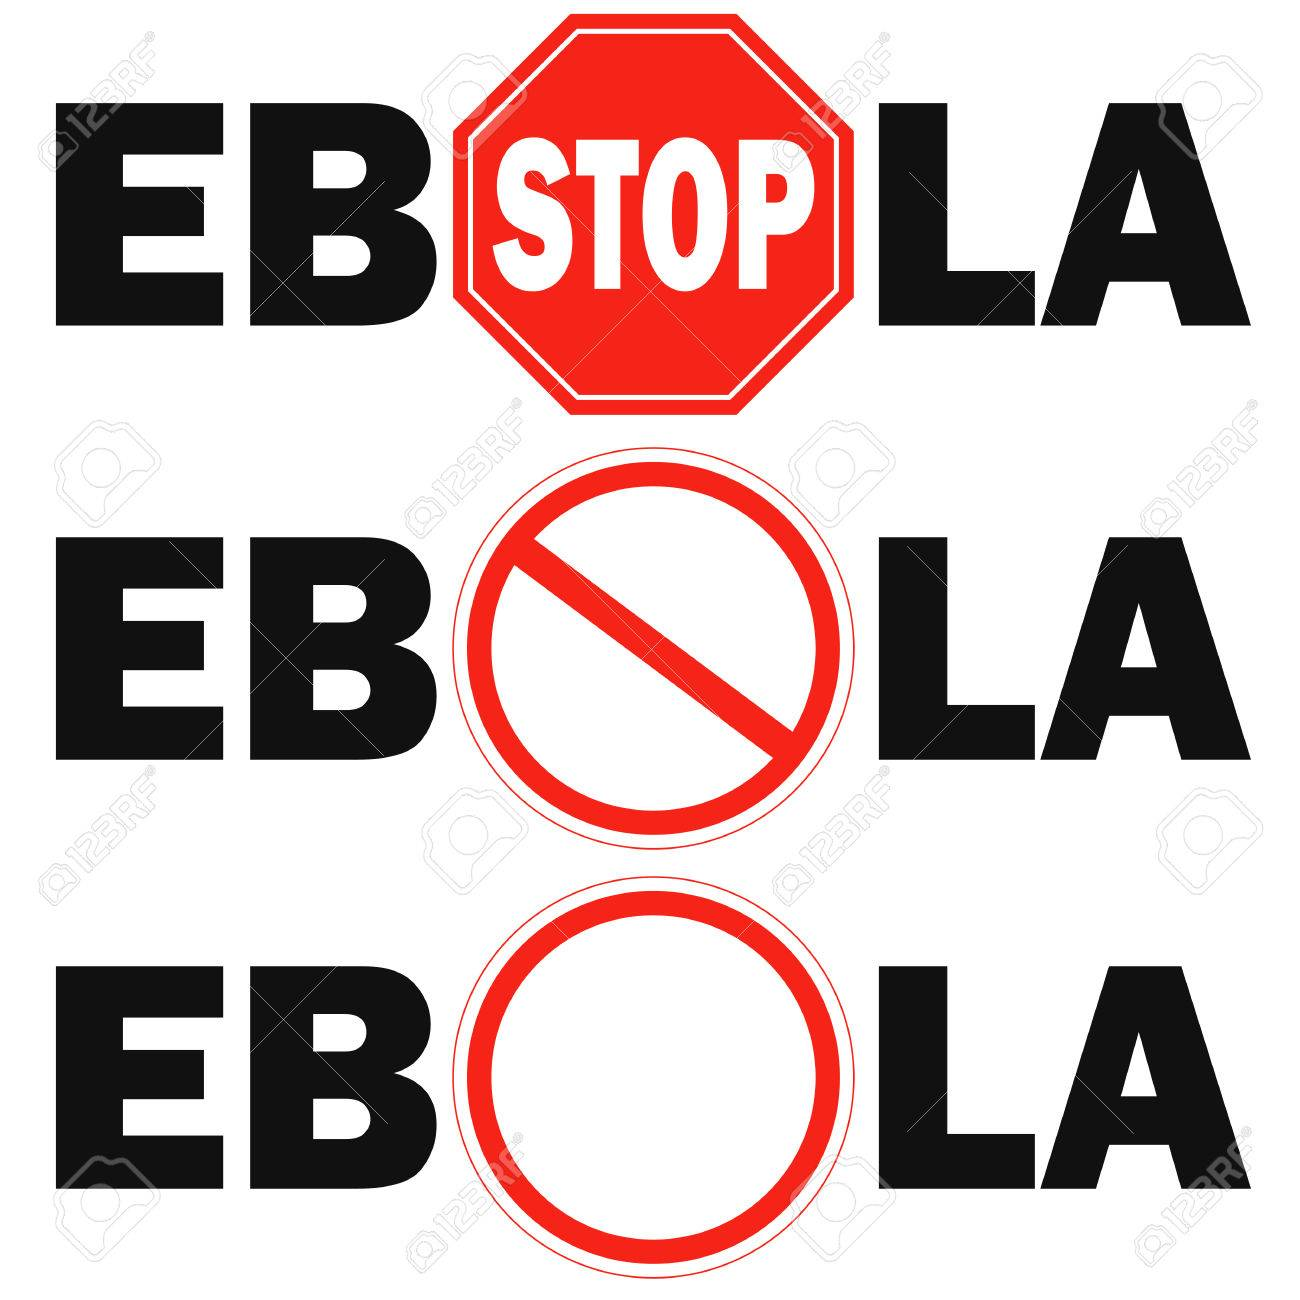 3 Stop Sign Ebola Virus On White Background Royalty Cliparts 1300x1300